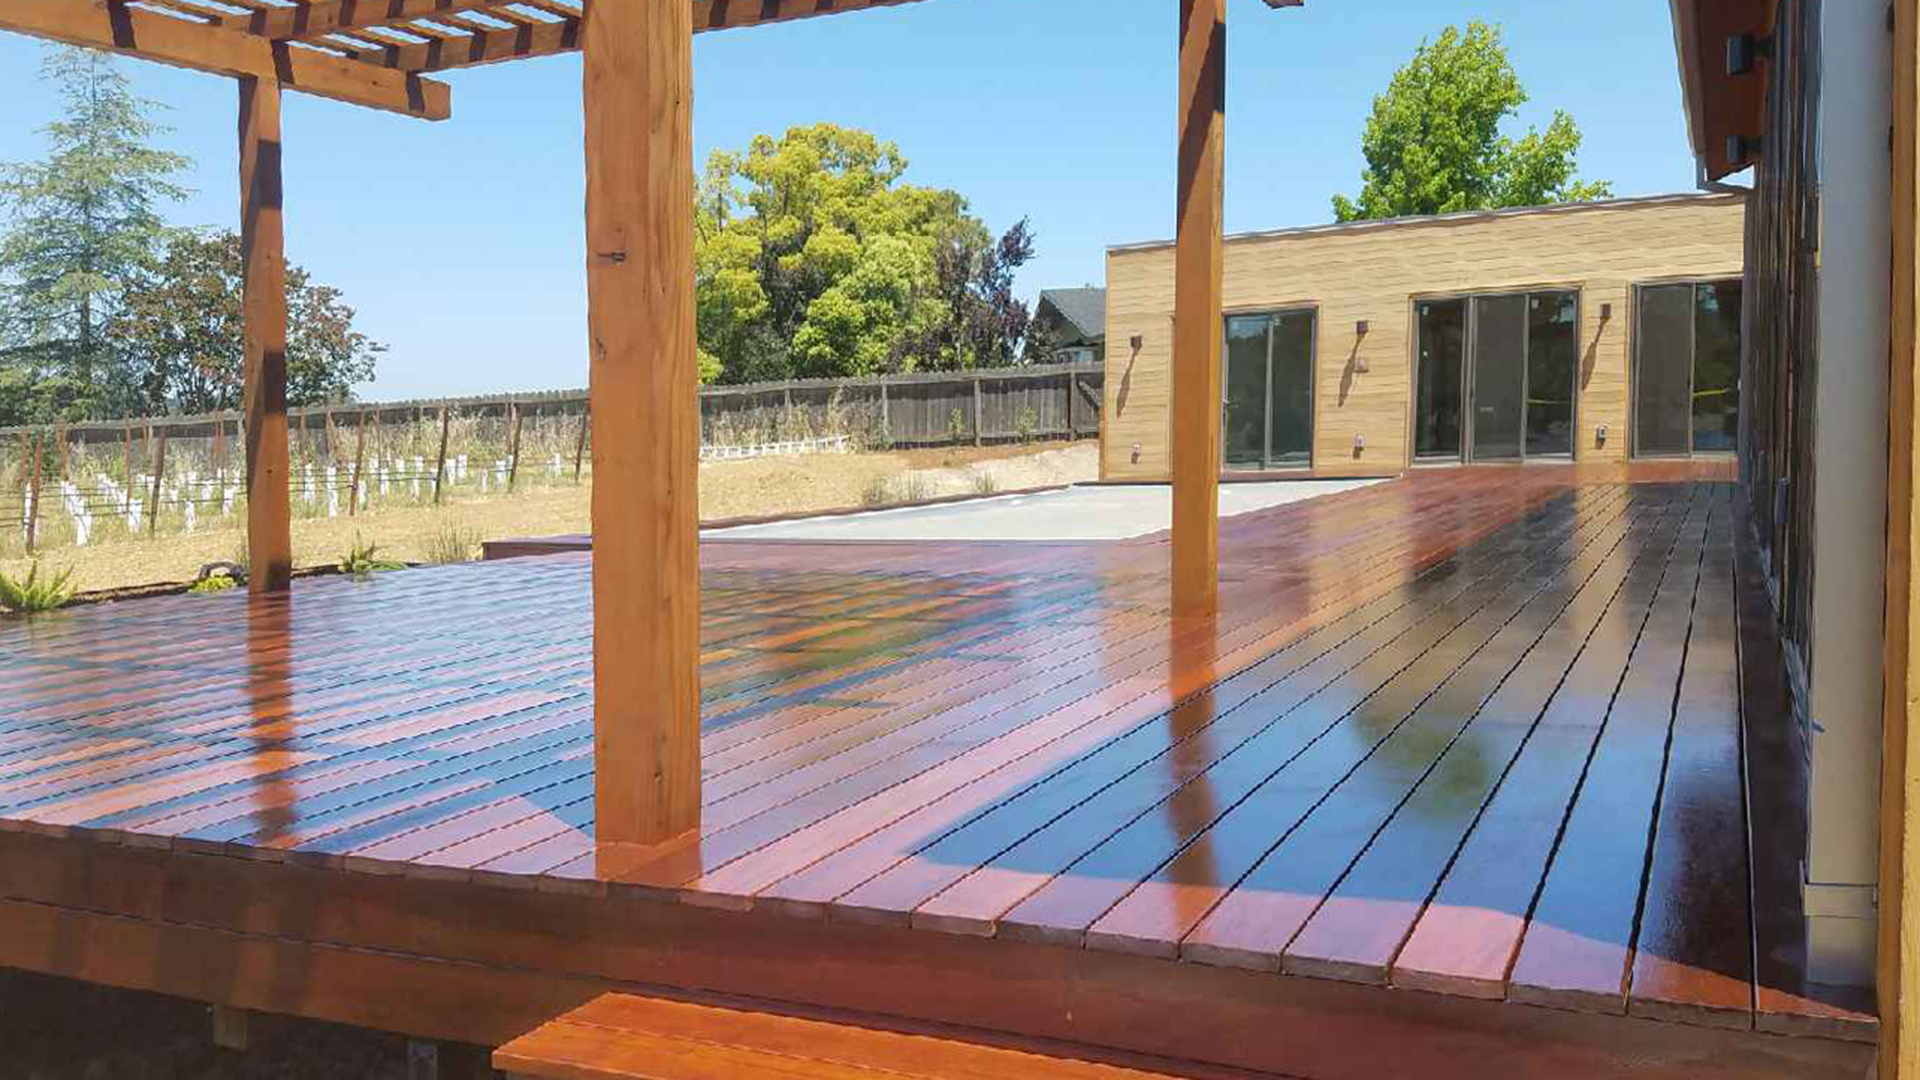 Ironwood deck with Redwood Patio Cover - Napa CA